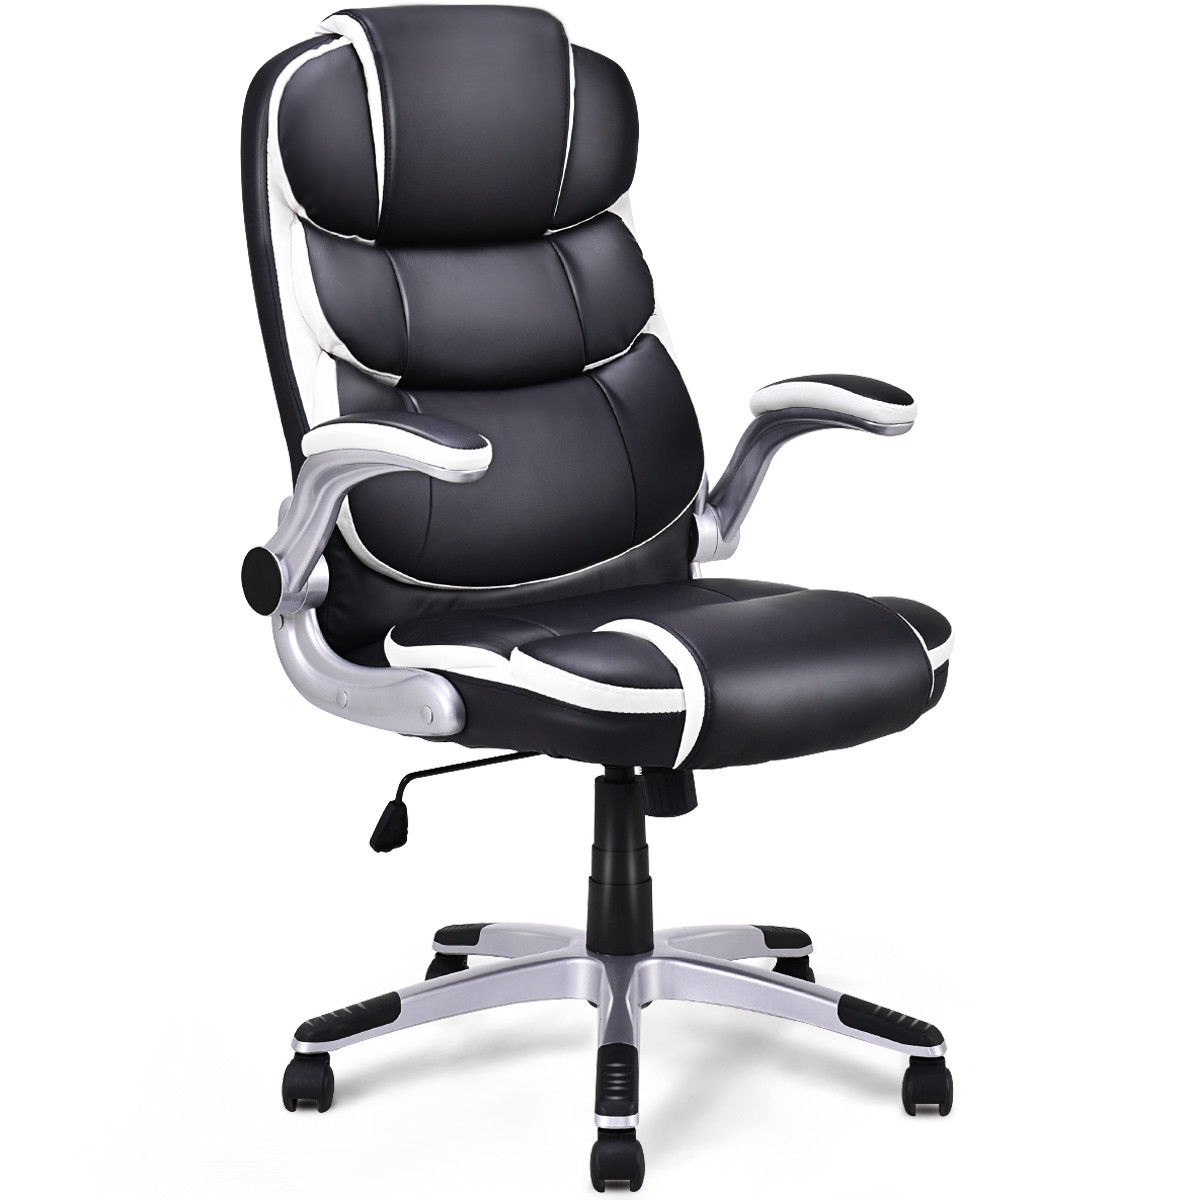 Giantex PU Leather High Back Executive Office Chair Modern Swivel Desk Task Computer Gaming Chairs Ergonomic Furniture HW56602 giantex pu leather high back racing style bucket seat gaming chair with head pillow modern office desk computer chairs hw52433